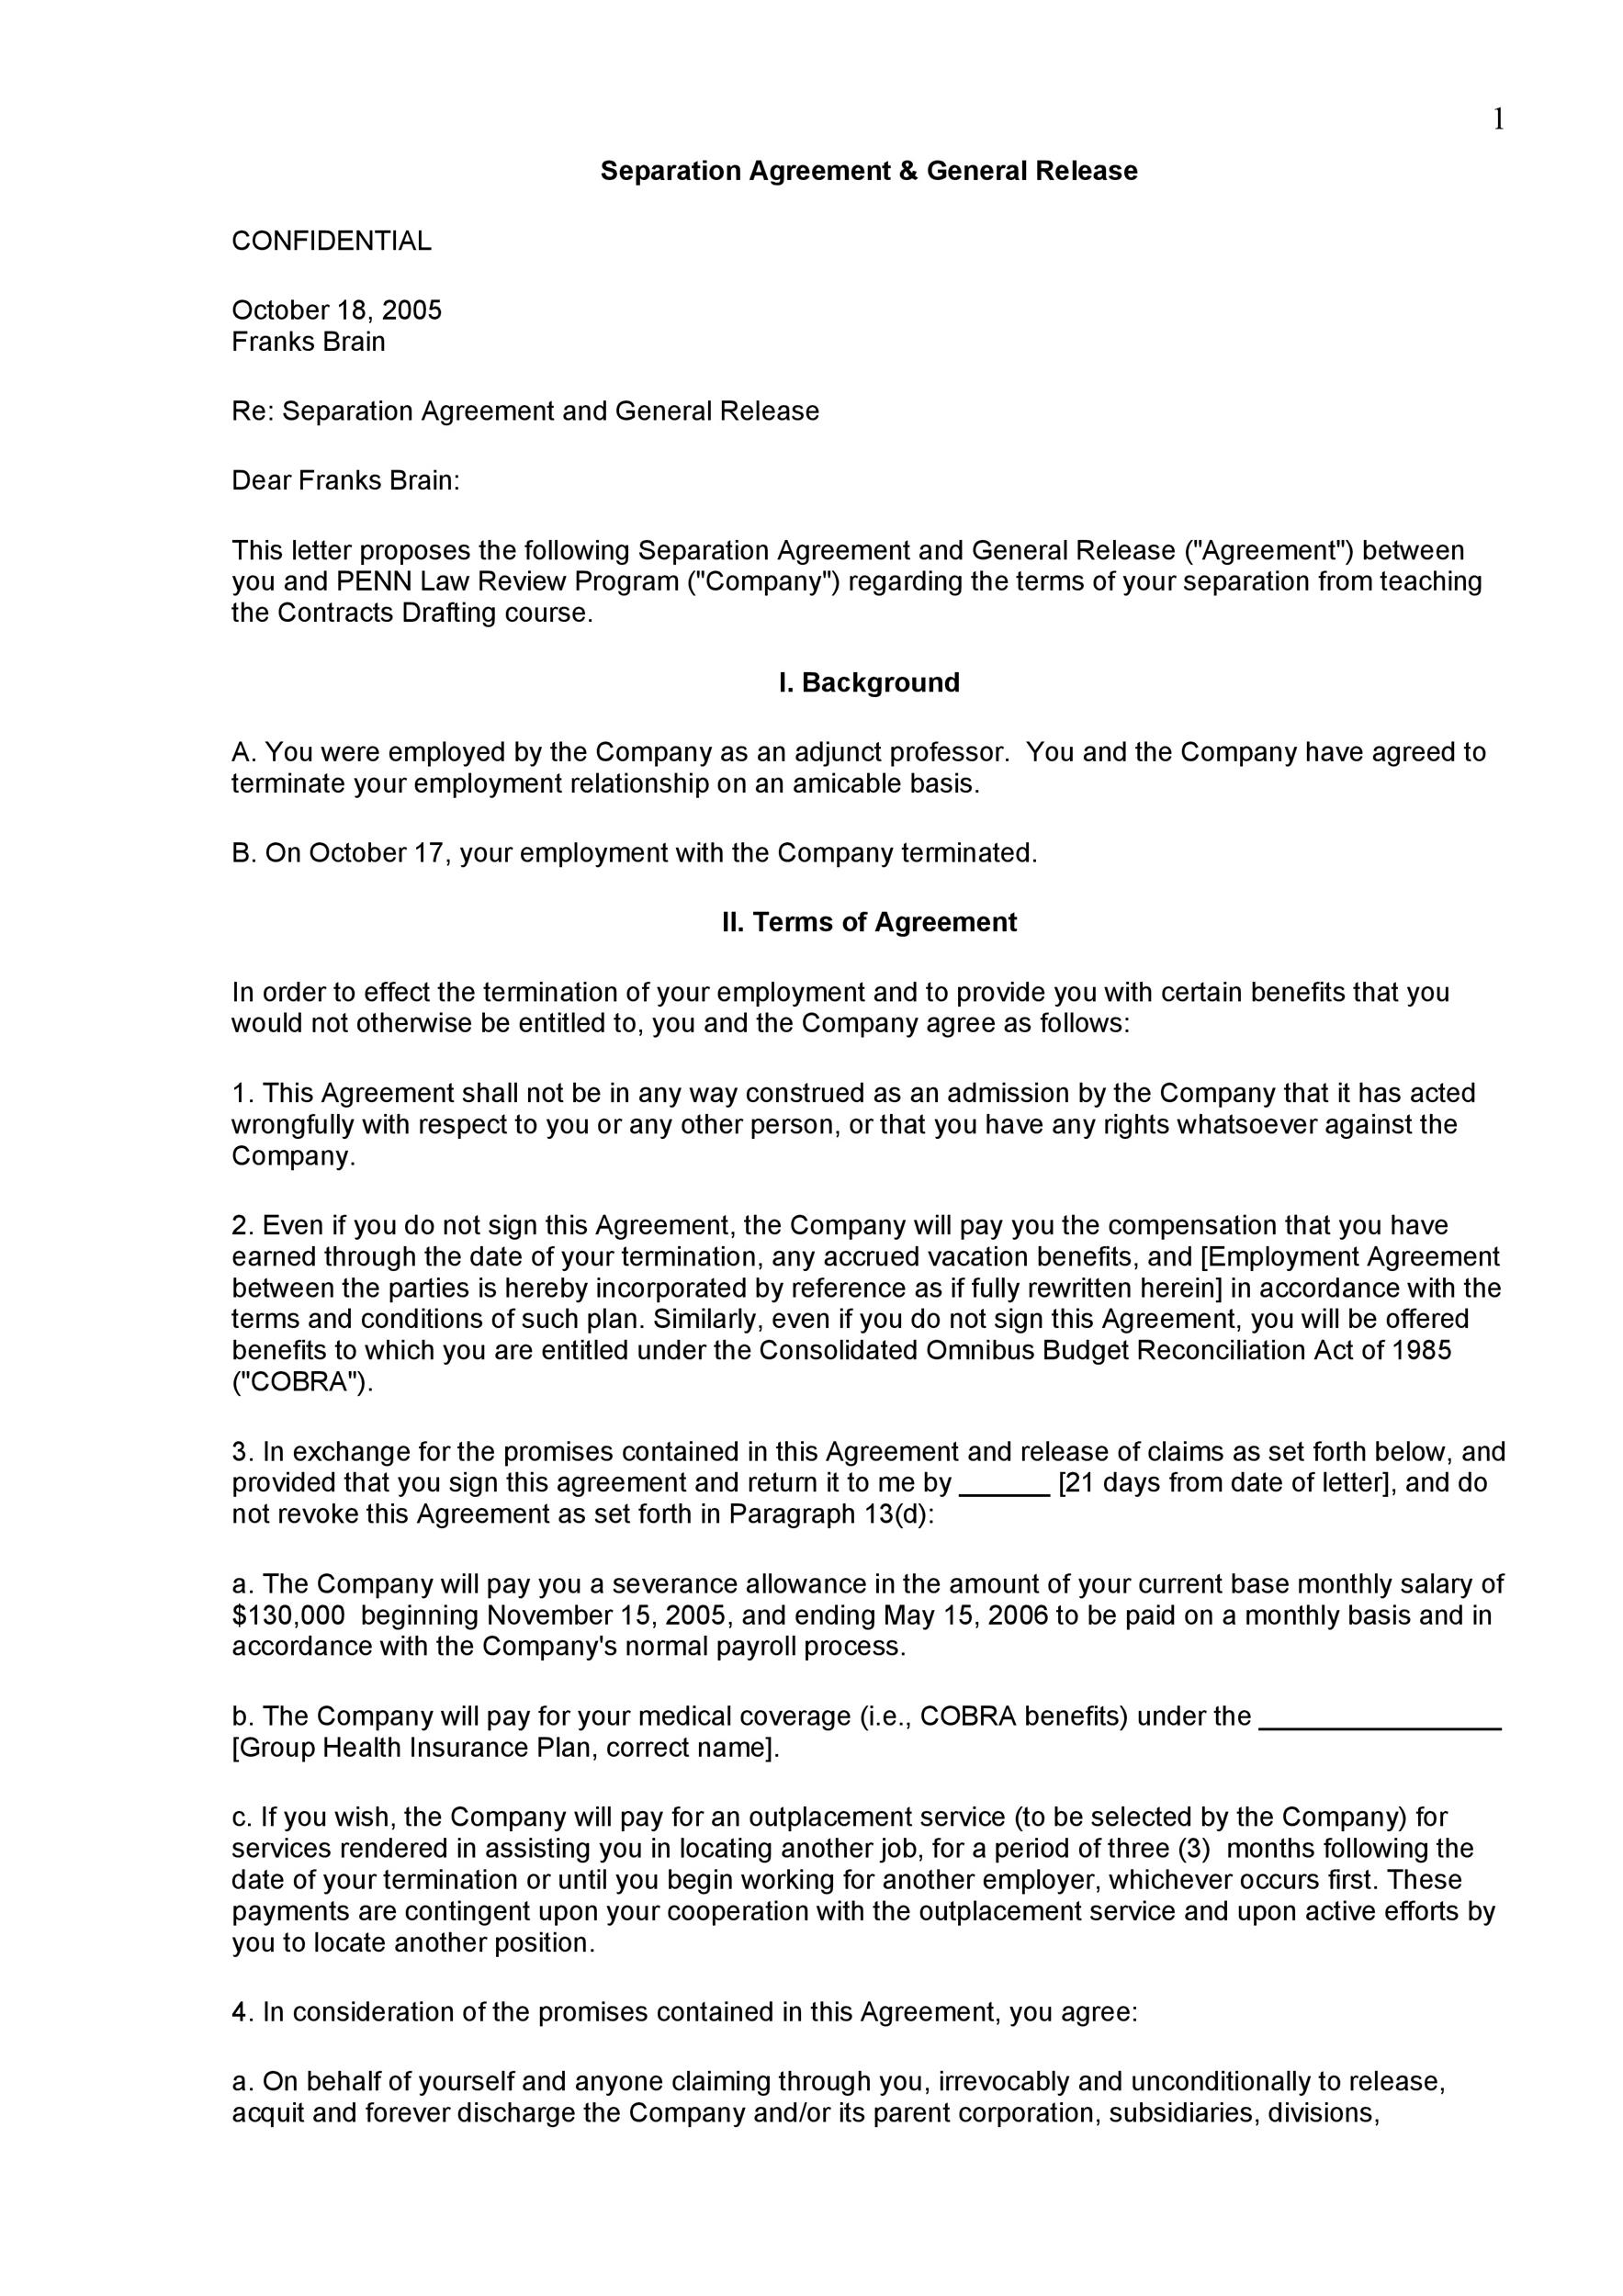 Free Separation Agreement Template 20